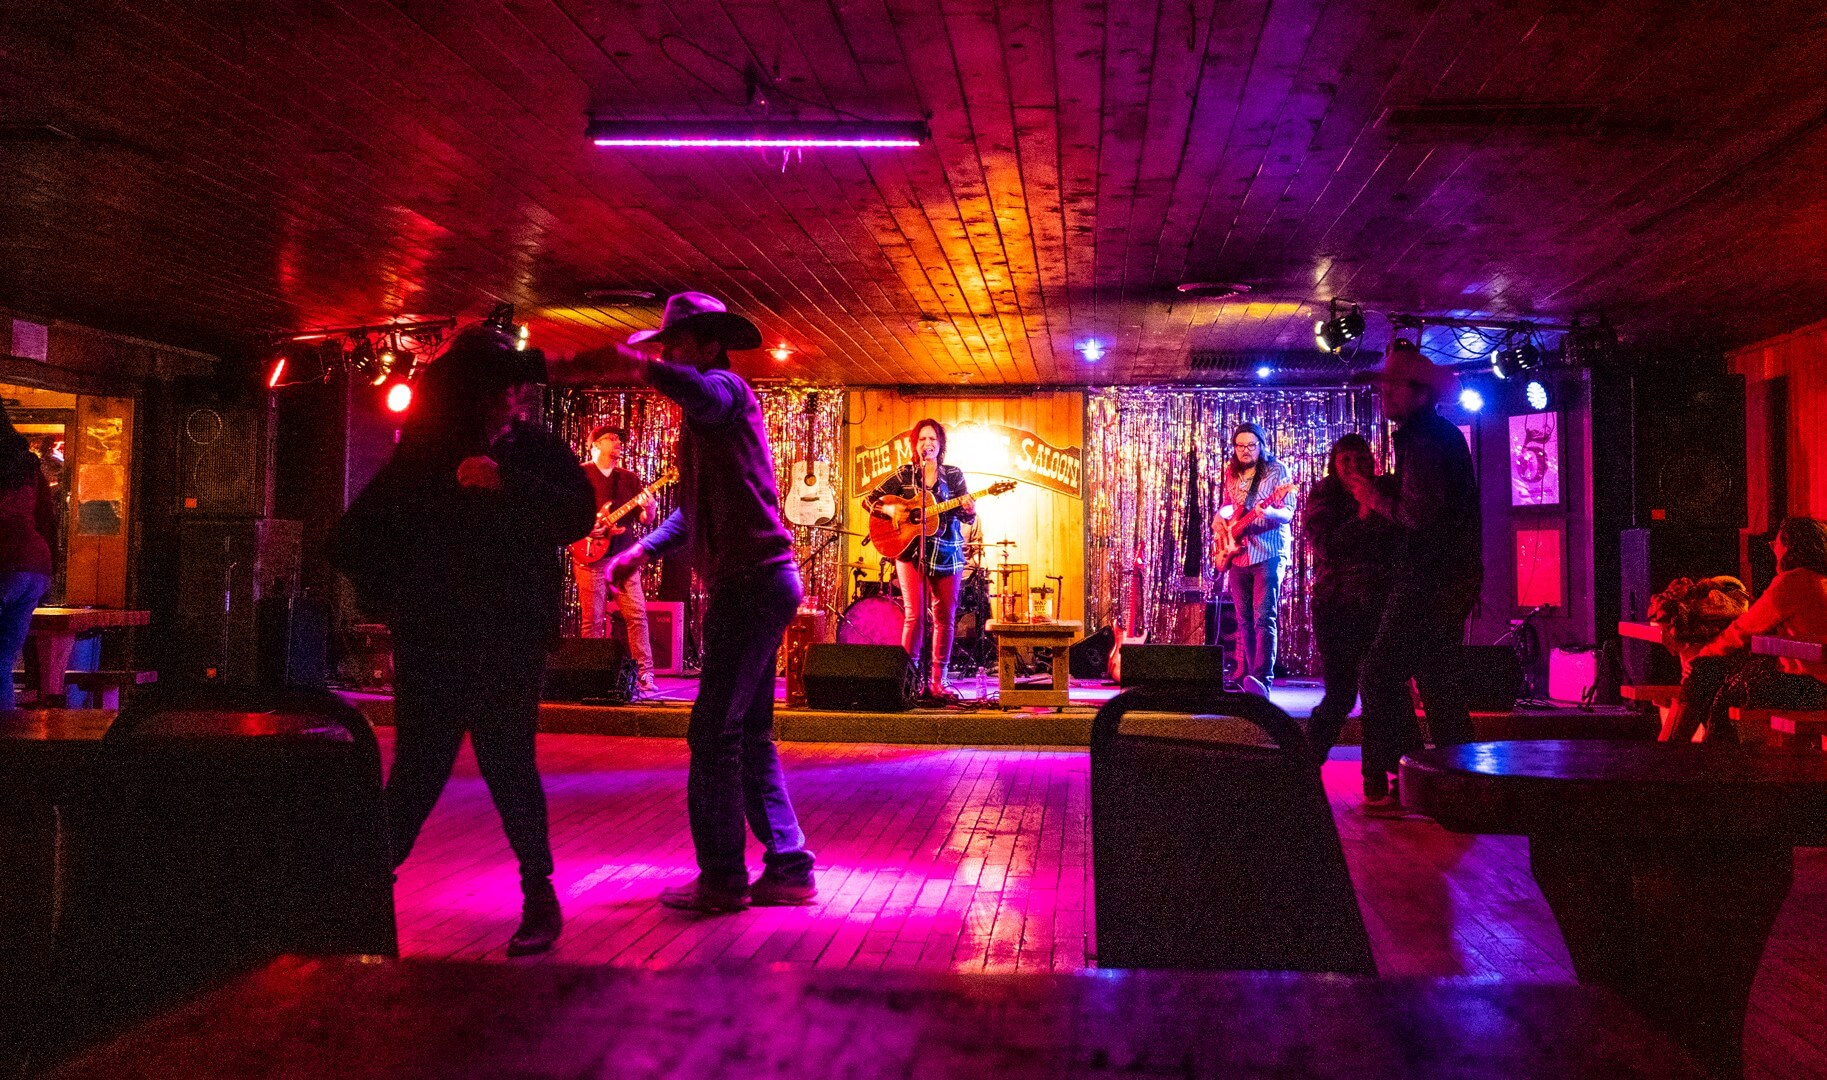 Band playing at Motherlode Saloon one of the most important things to do in Red River NM